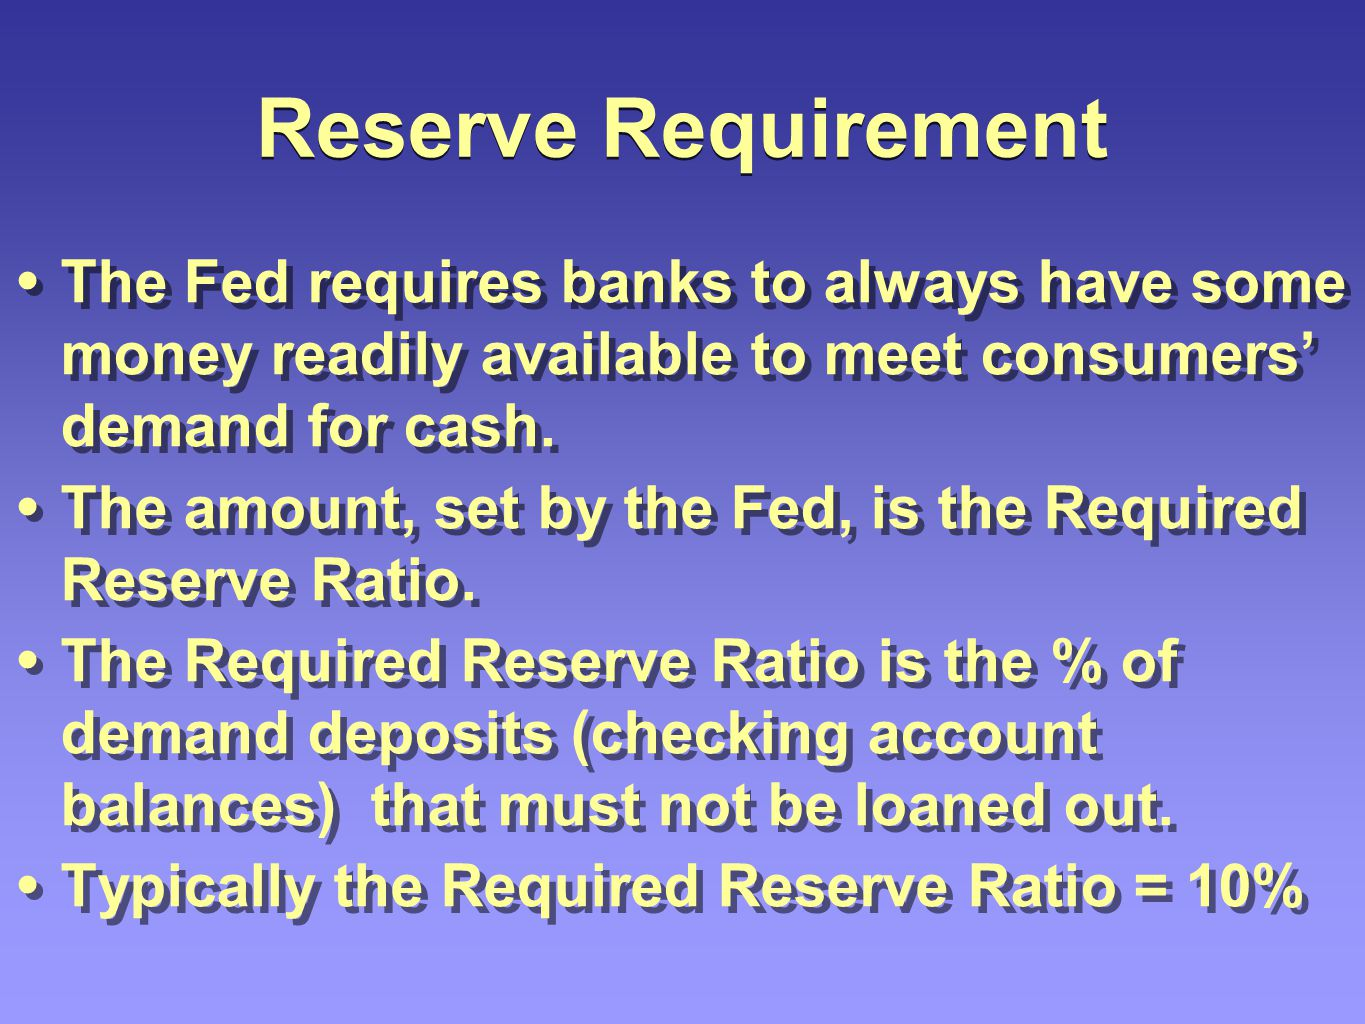 Reserve Requirement The Fed requires banks to always have some money readily available to meet consumers' demand for cash.